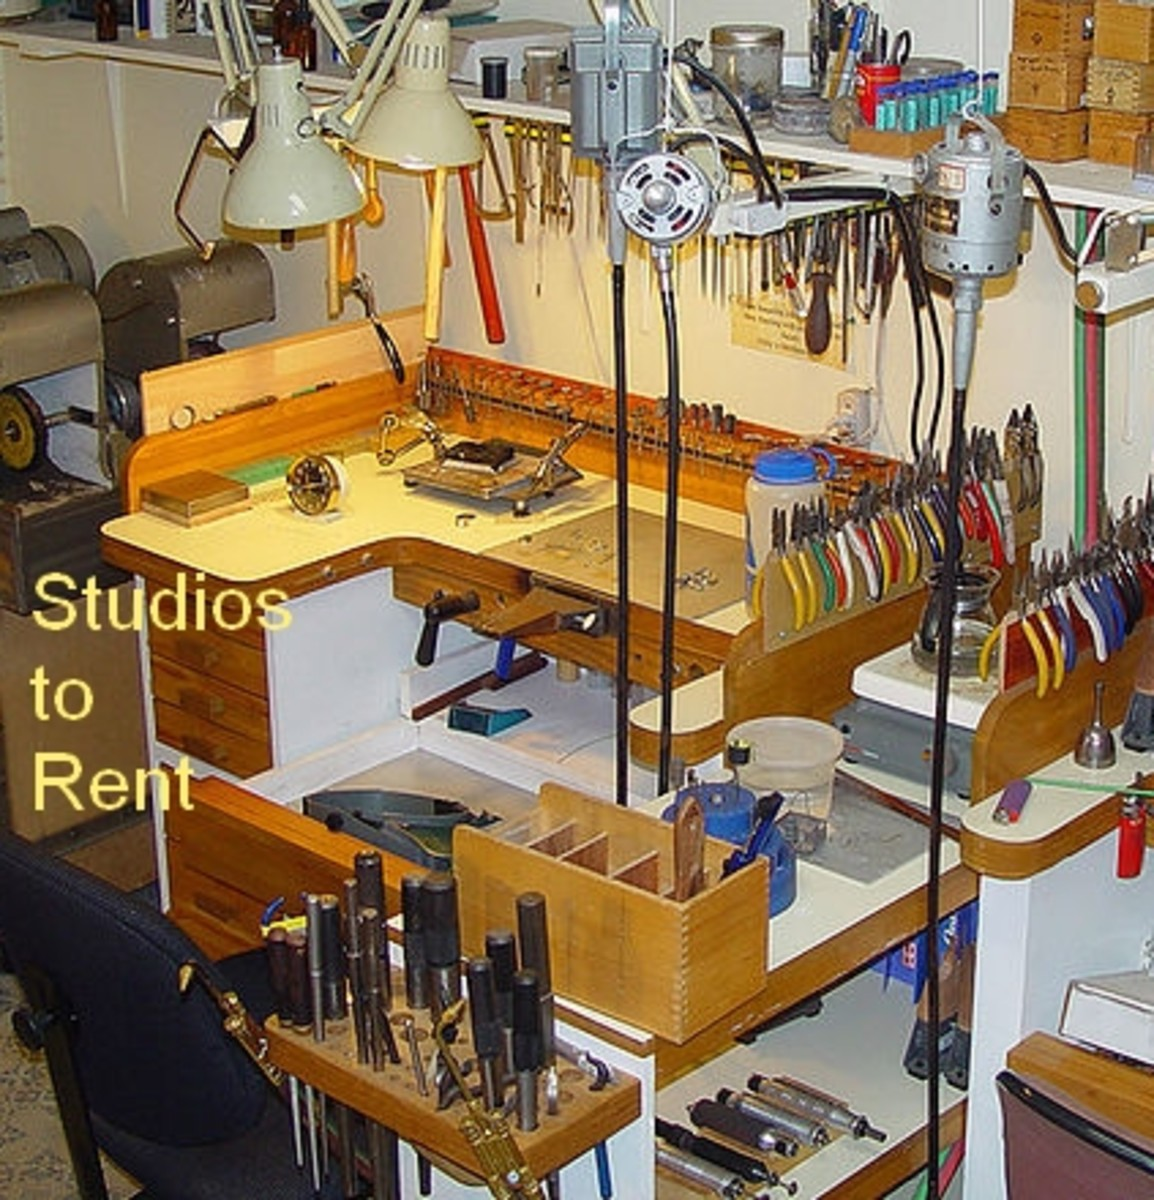 Jewellery Studios to Rent.   Source: Adapted by Author